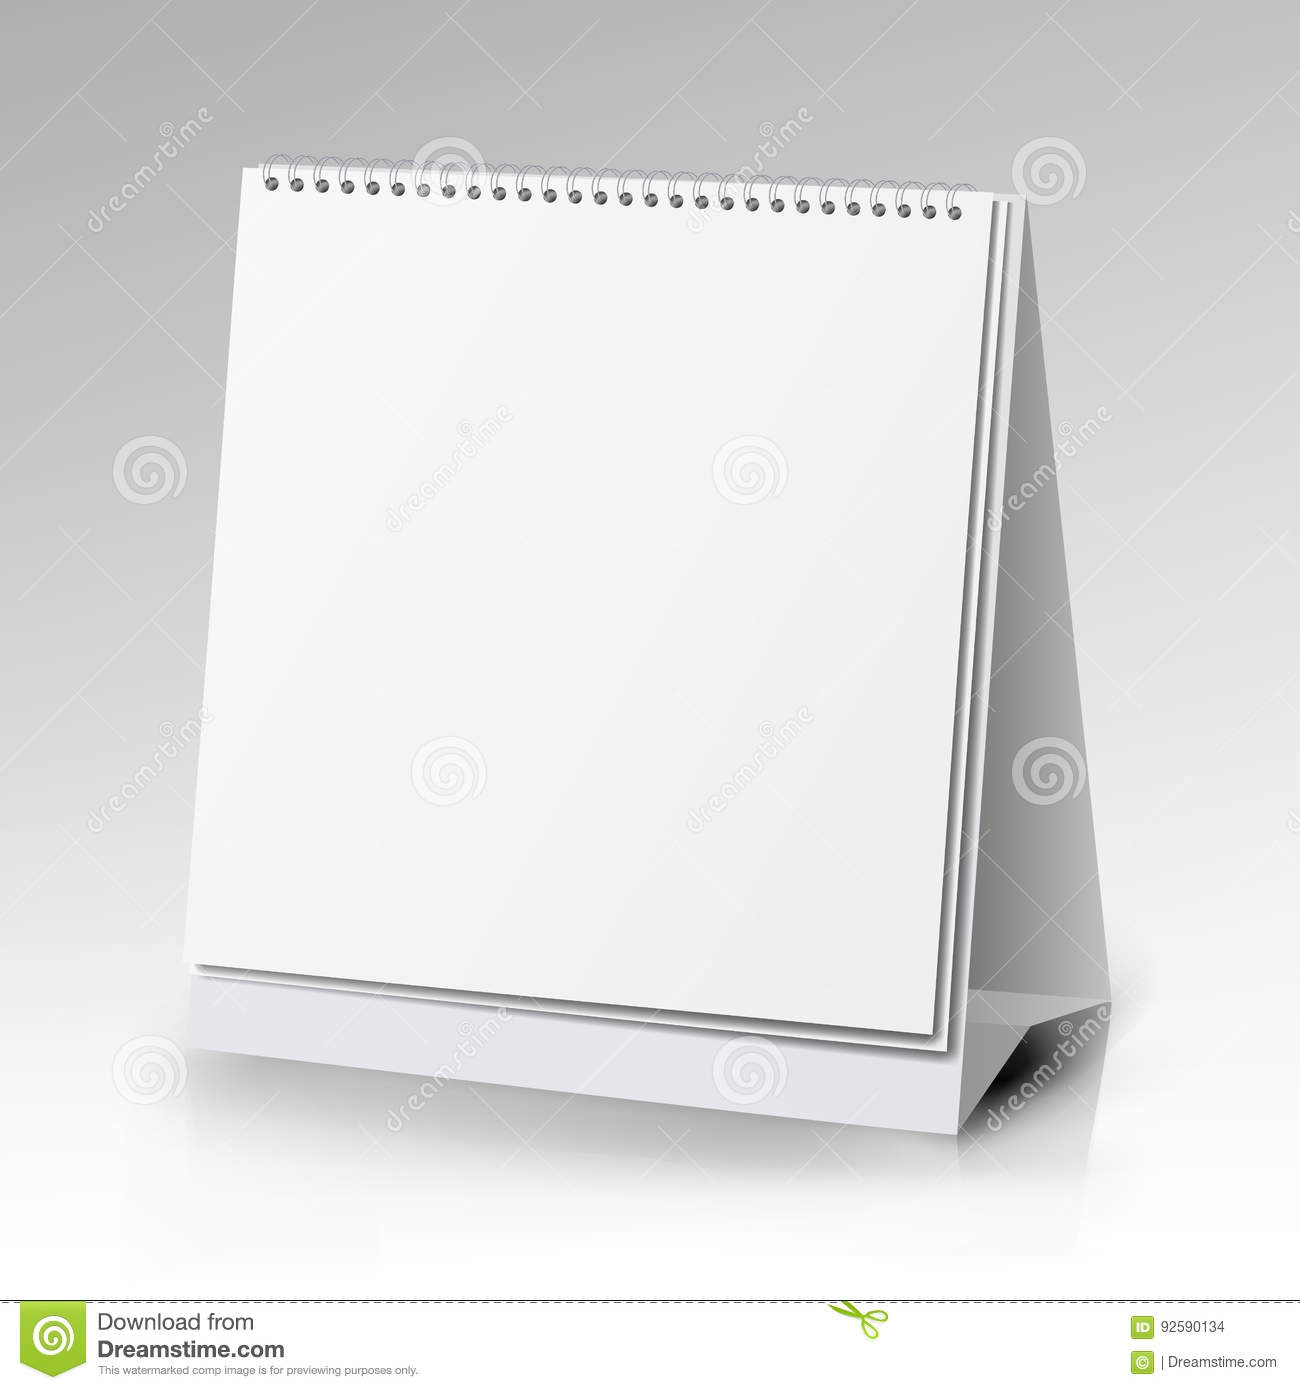 Blank Vector Calendar Template : Vector table blank stand holder for menu paper calendar